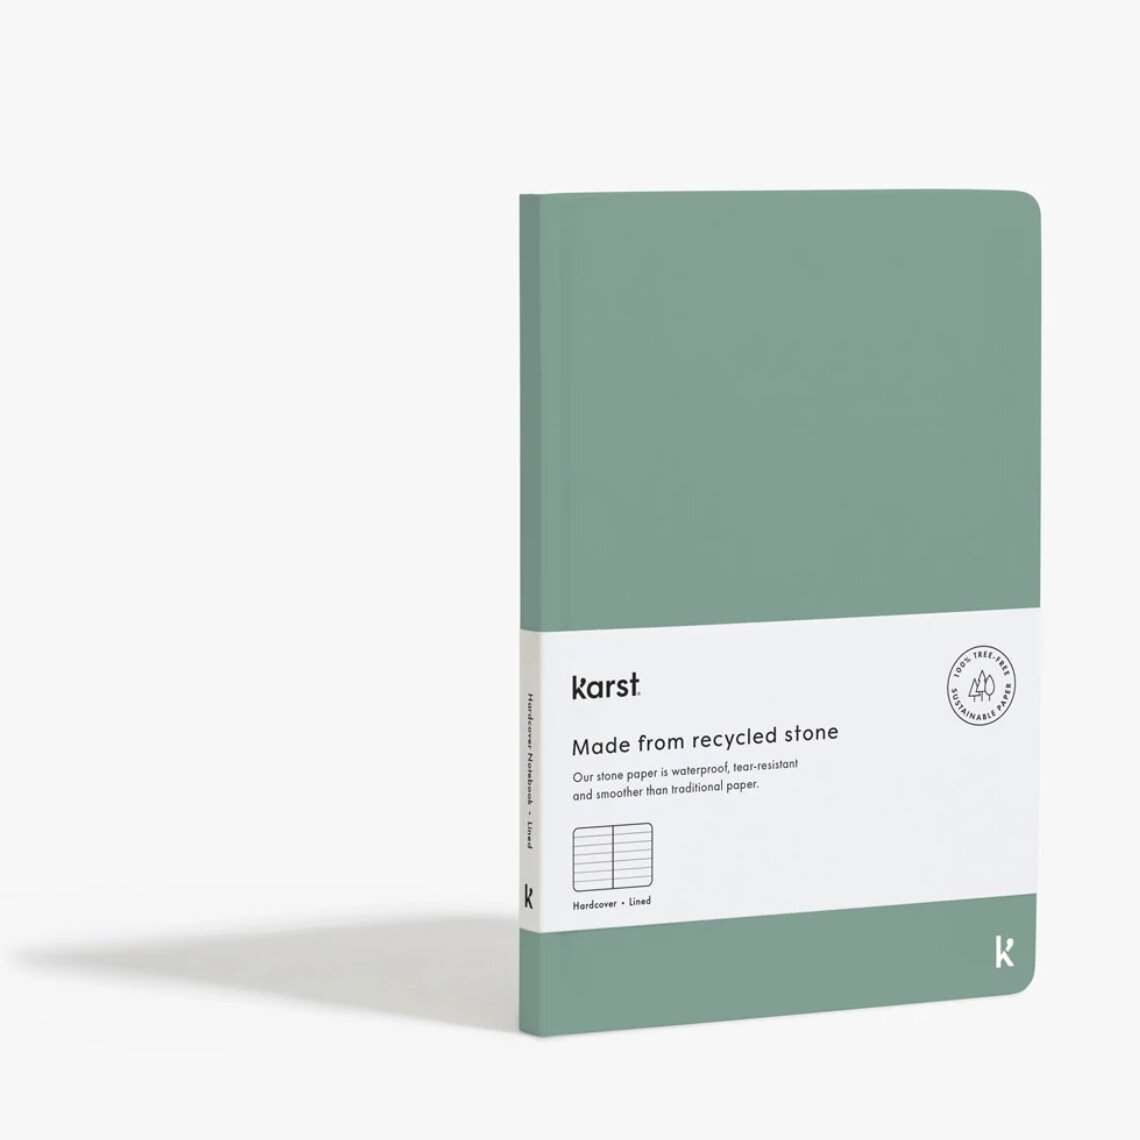 Karst Stone Paper, Hardcover Notebook  £20,  Buy now